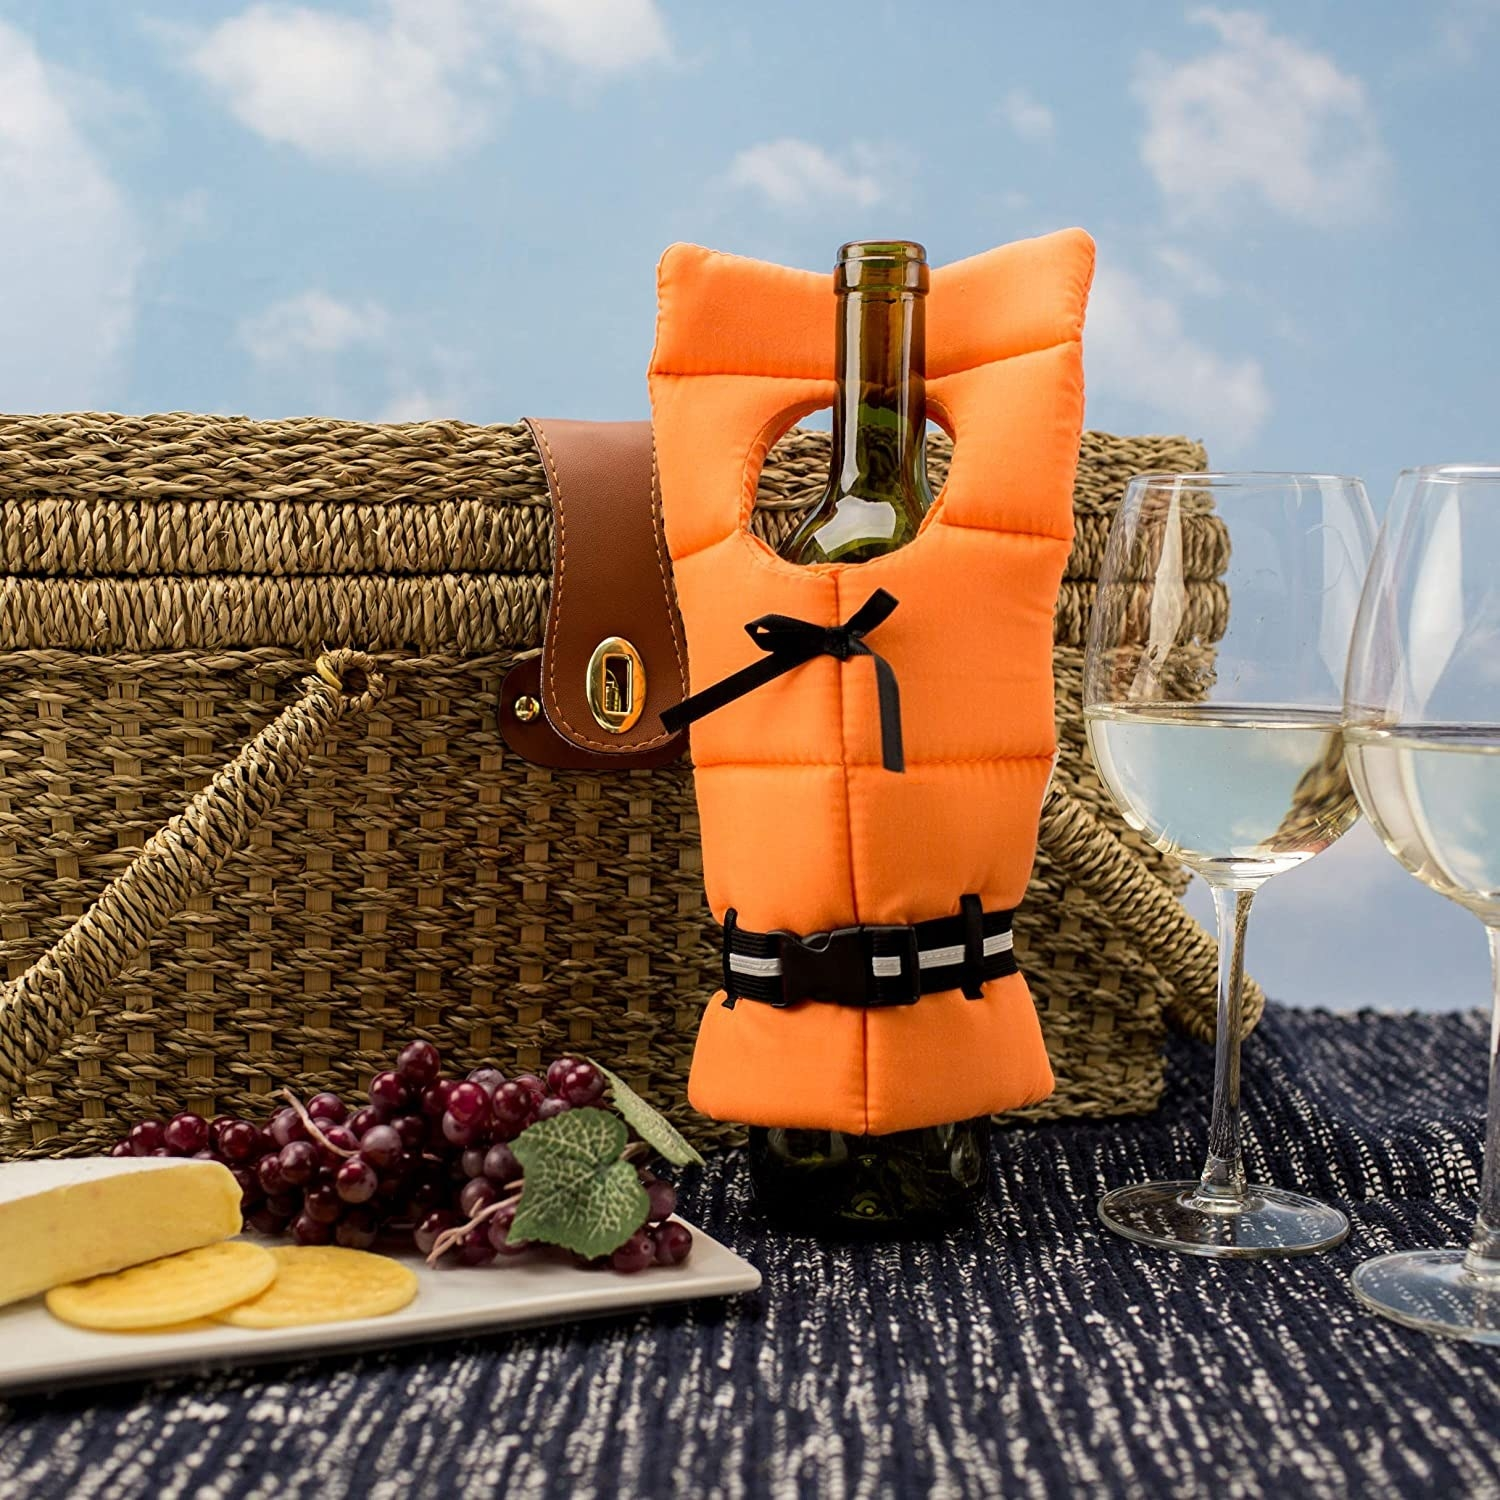 A bottle of wine with the lifejacket on it surrounded by a cheese plate, wine glasses, and picnic basket.